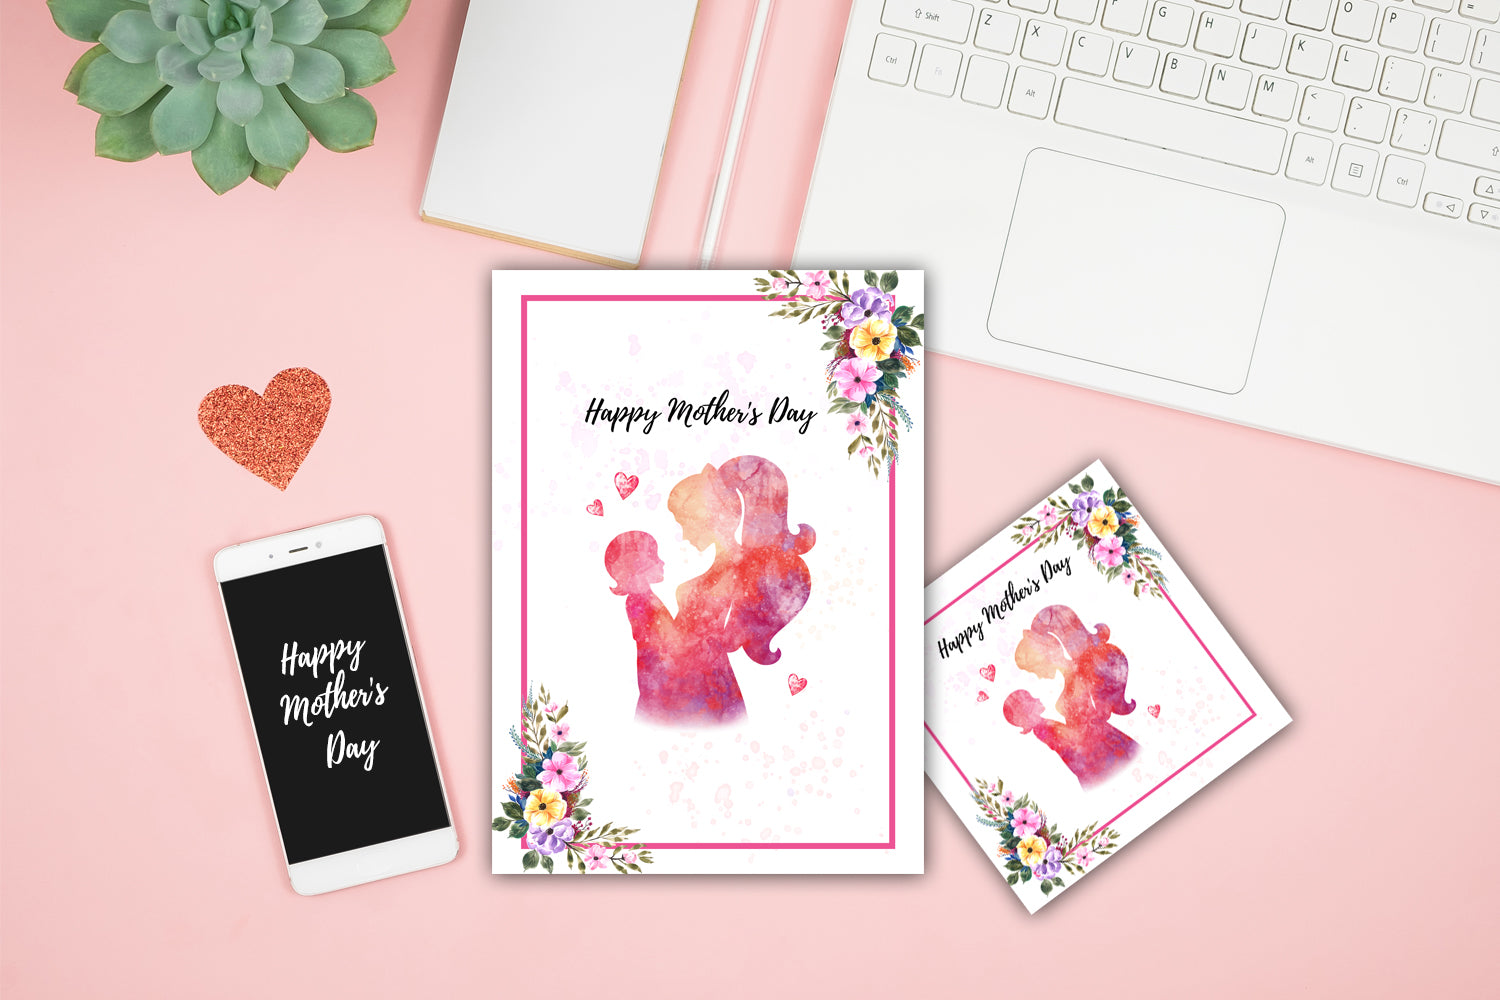 Women Day Card, Happy Mother's Day, Painting Card Designs, Art Designs, Original and Prints